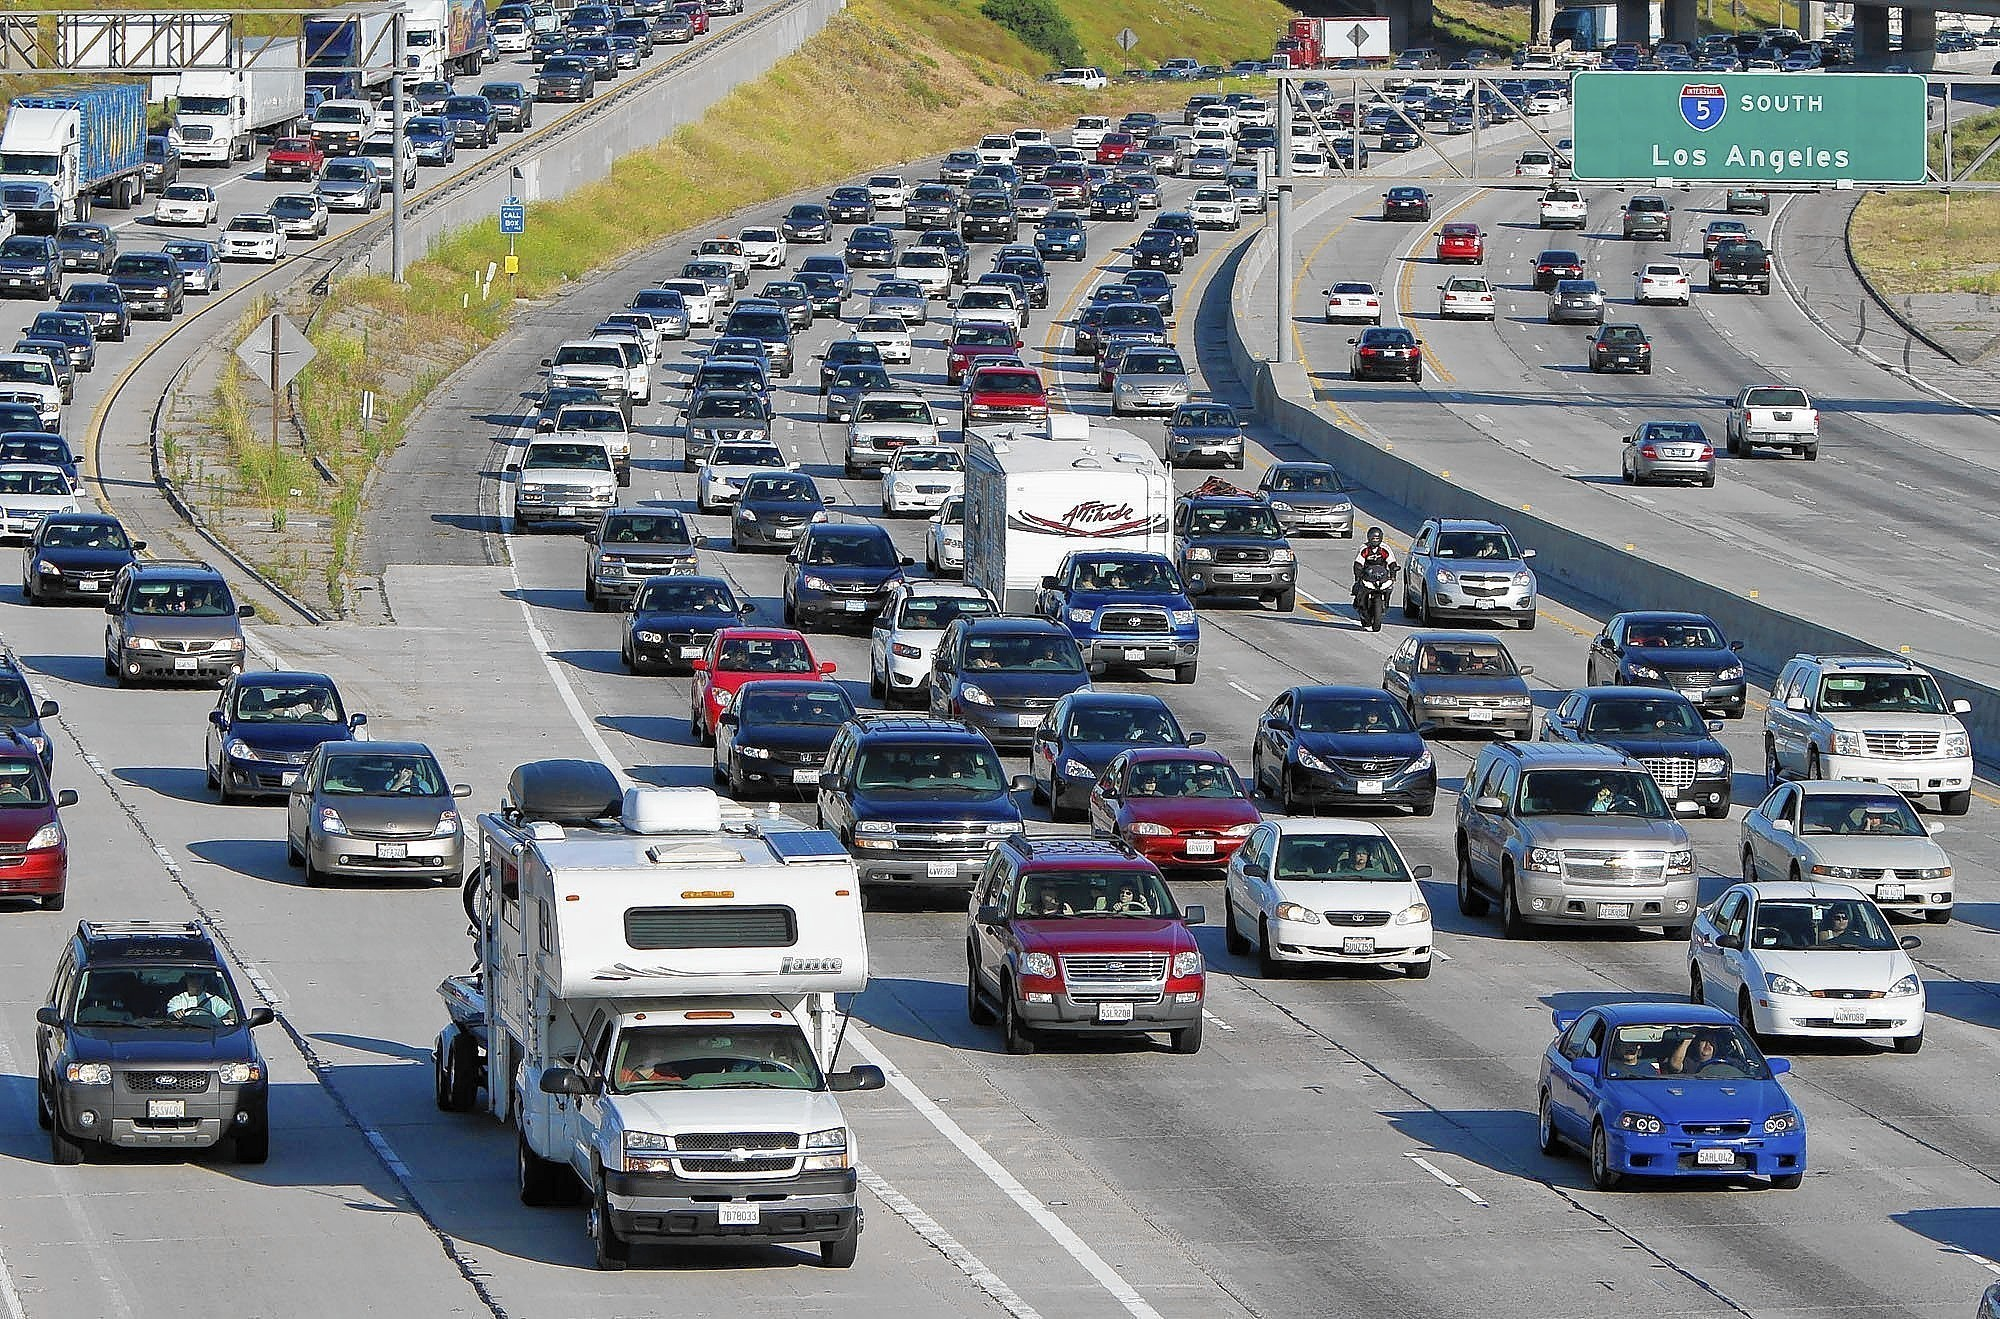 Memorial Day traffic expected to spike - LA Times